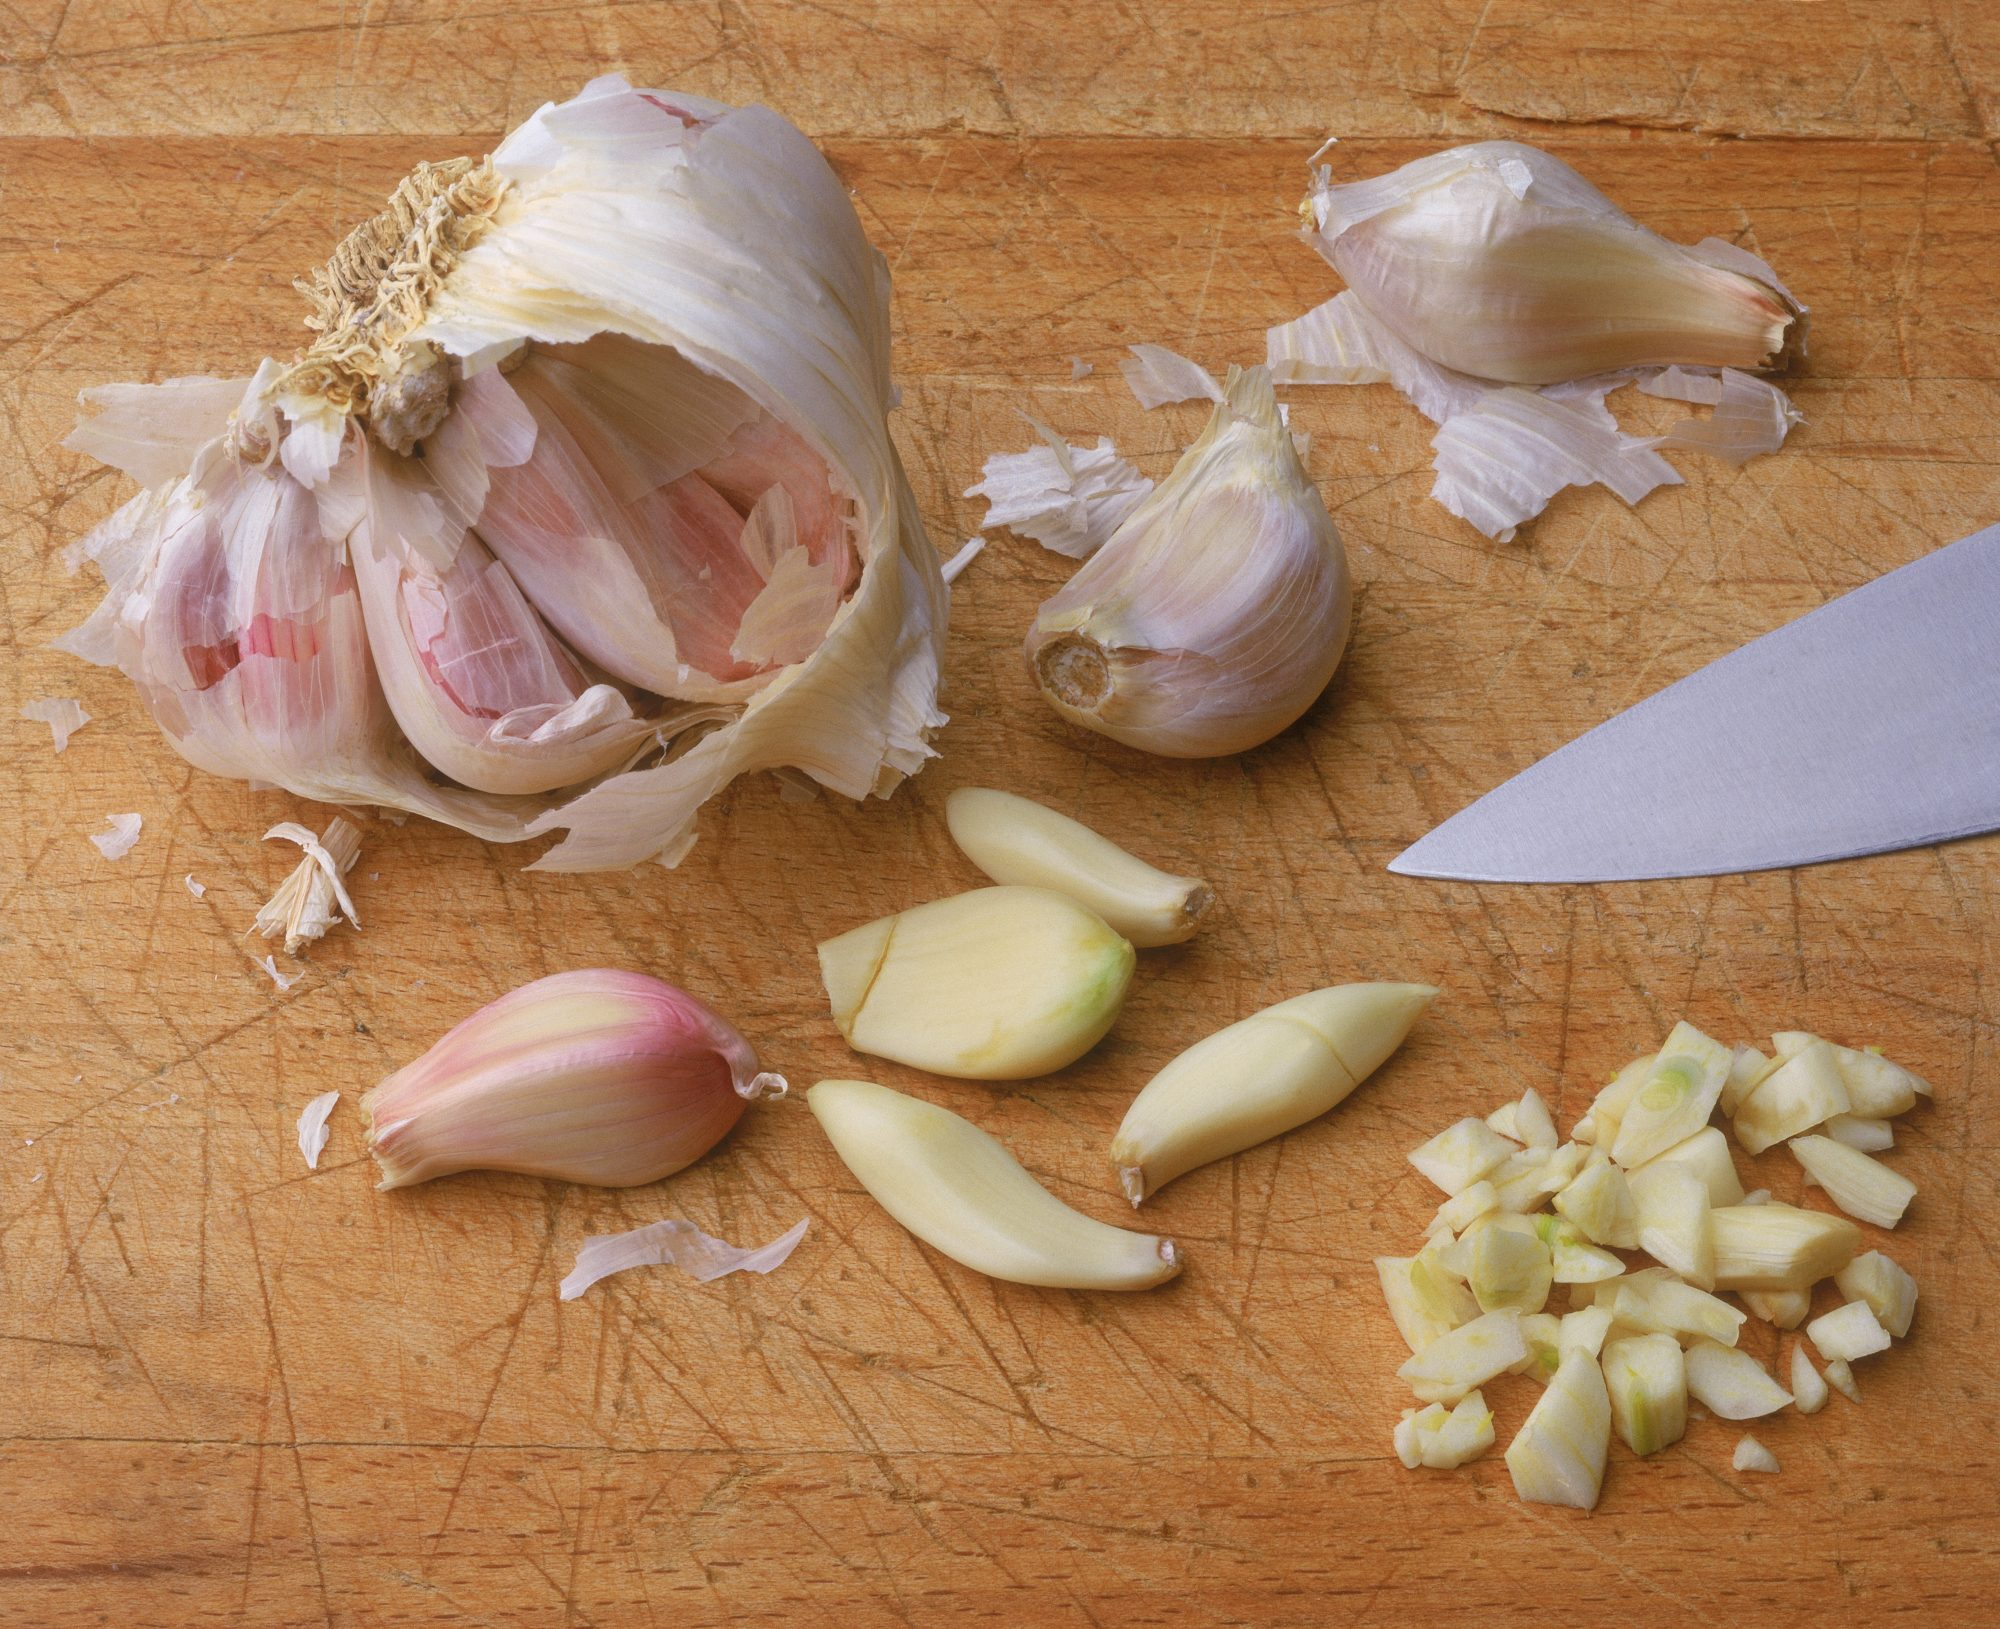 4 Common Ways to Ruin Your Garlic